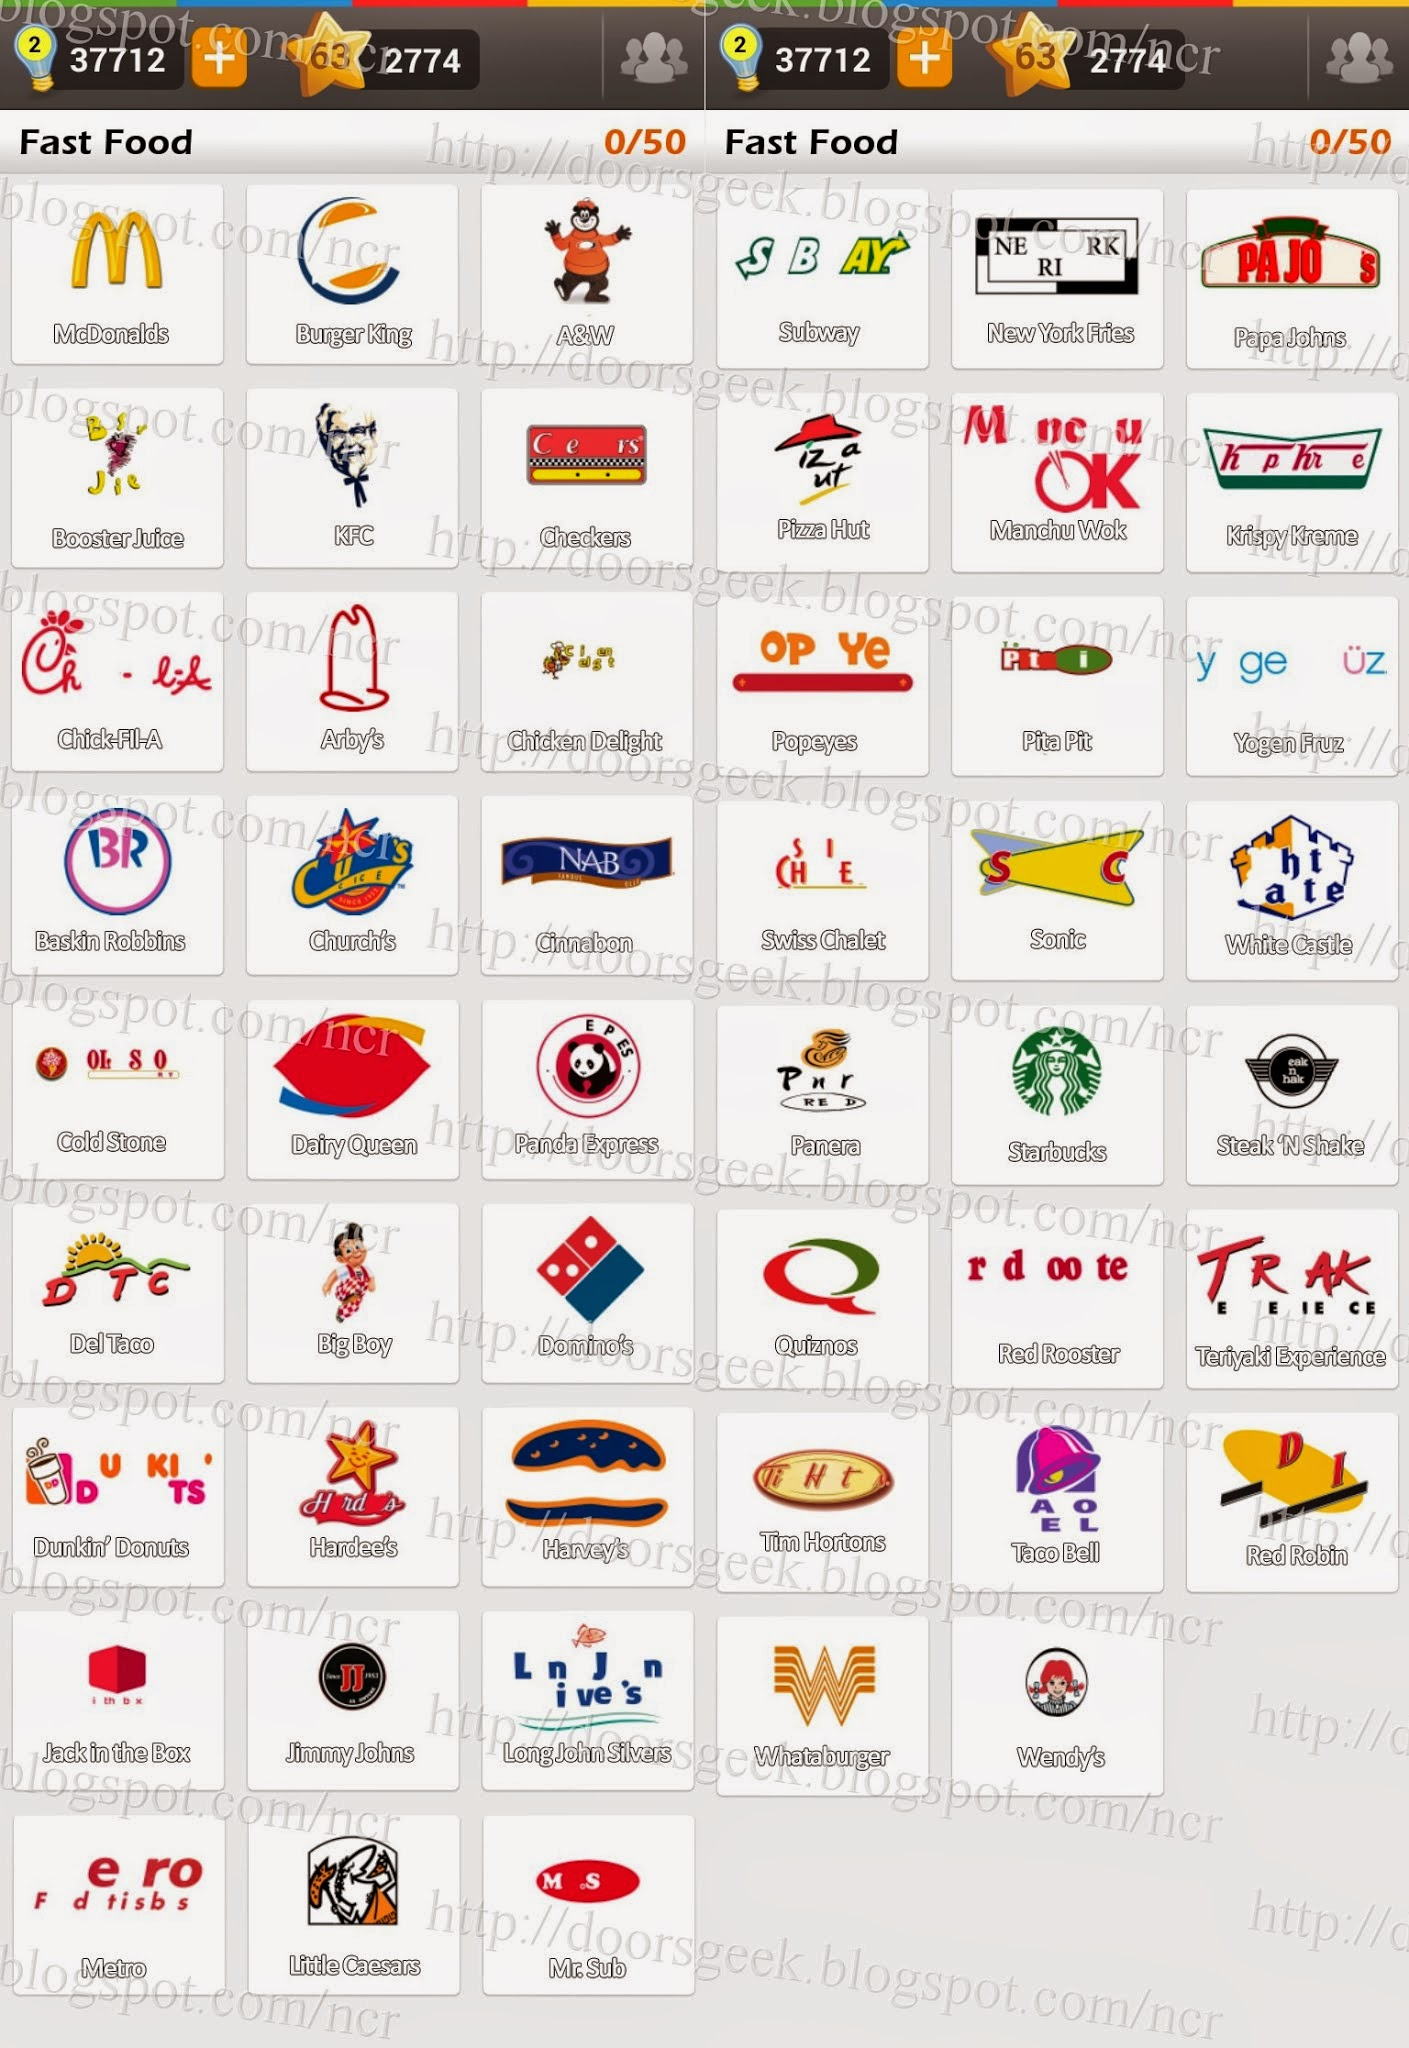 Slogan to Logo Match  Restaurant Chains Quiz  Sporcle